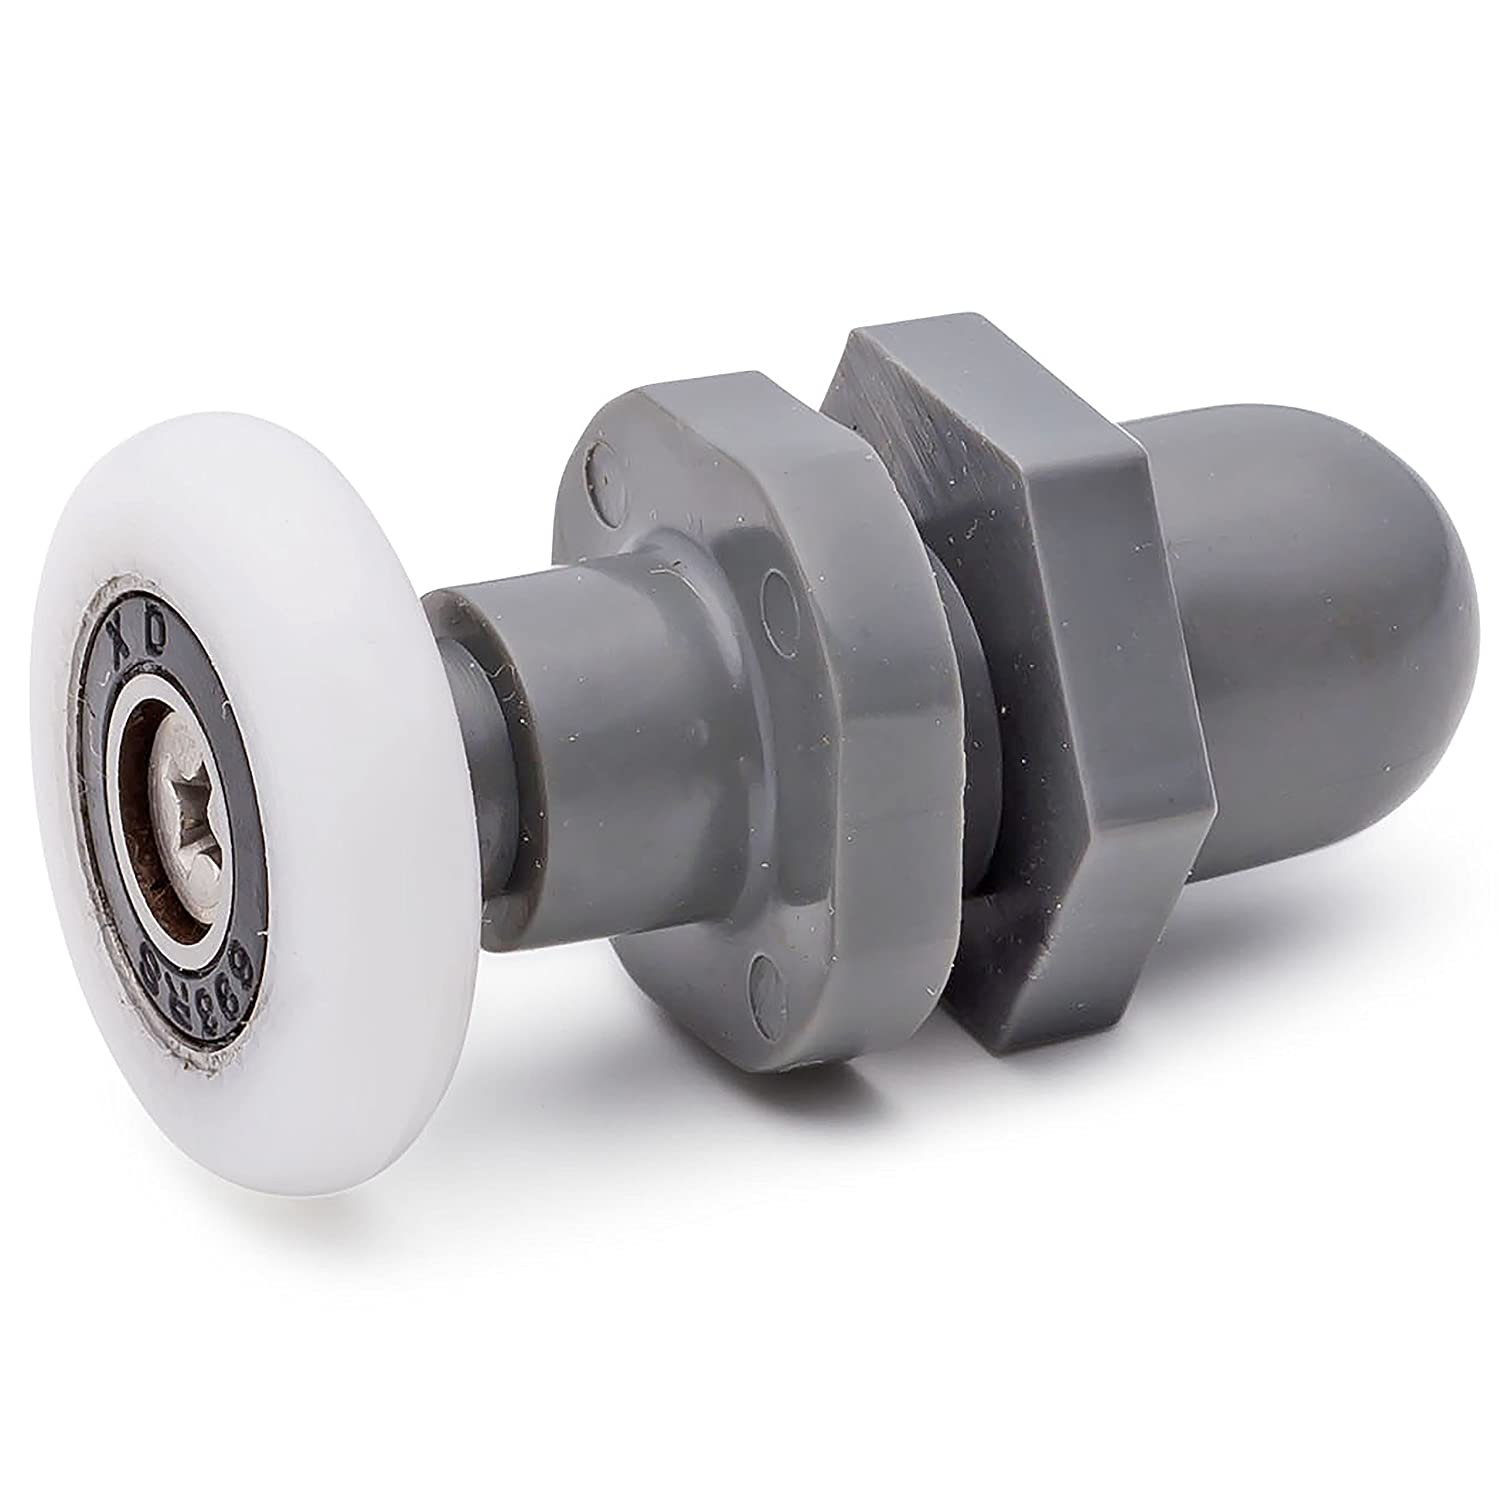 4 x Replacement Shower Door Rollers/Runners/Wheels 27mm in diameter K003a